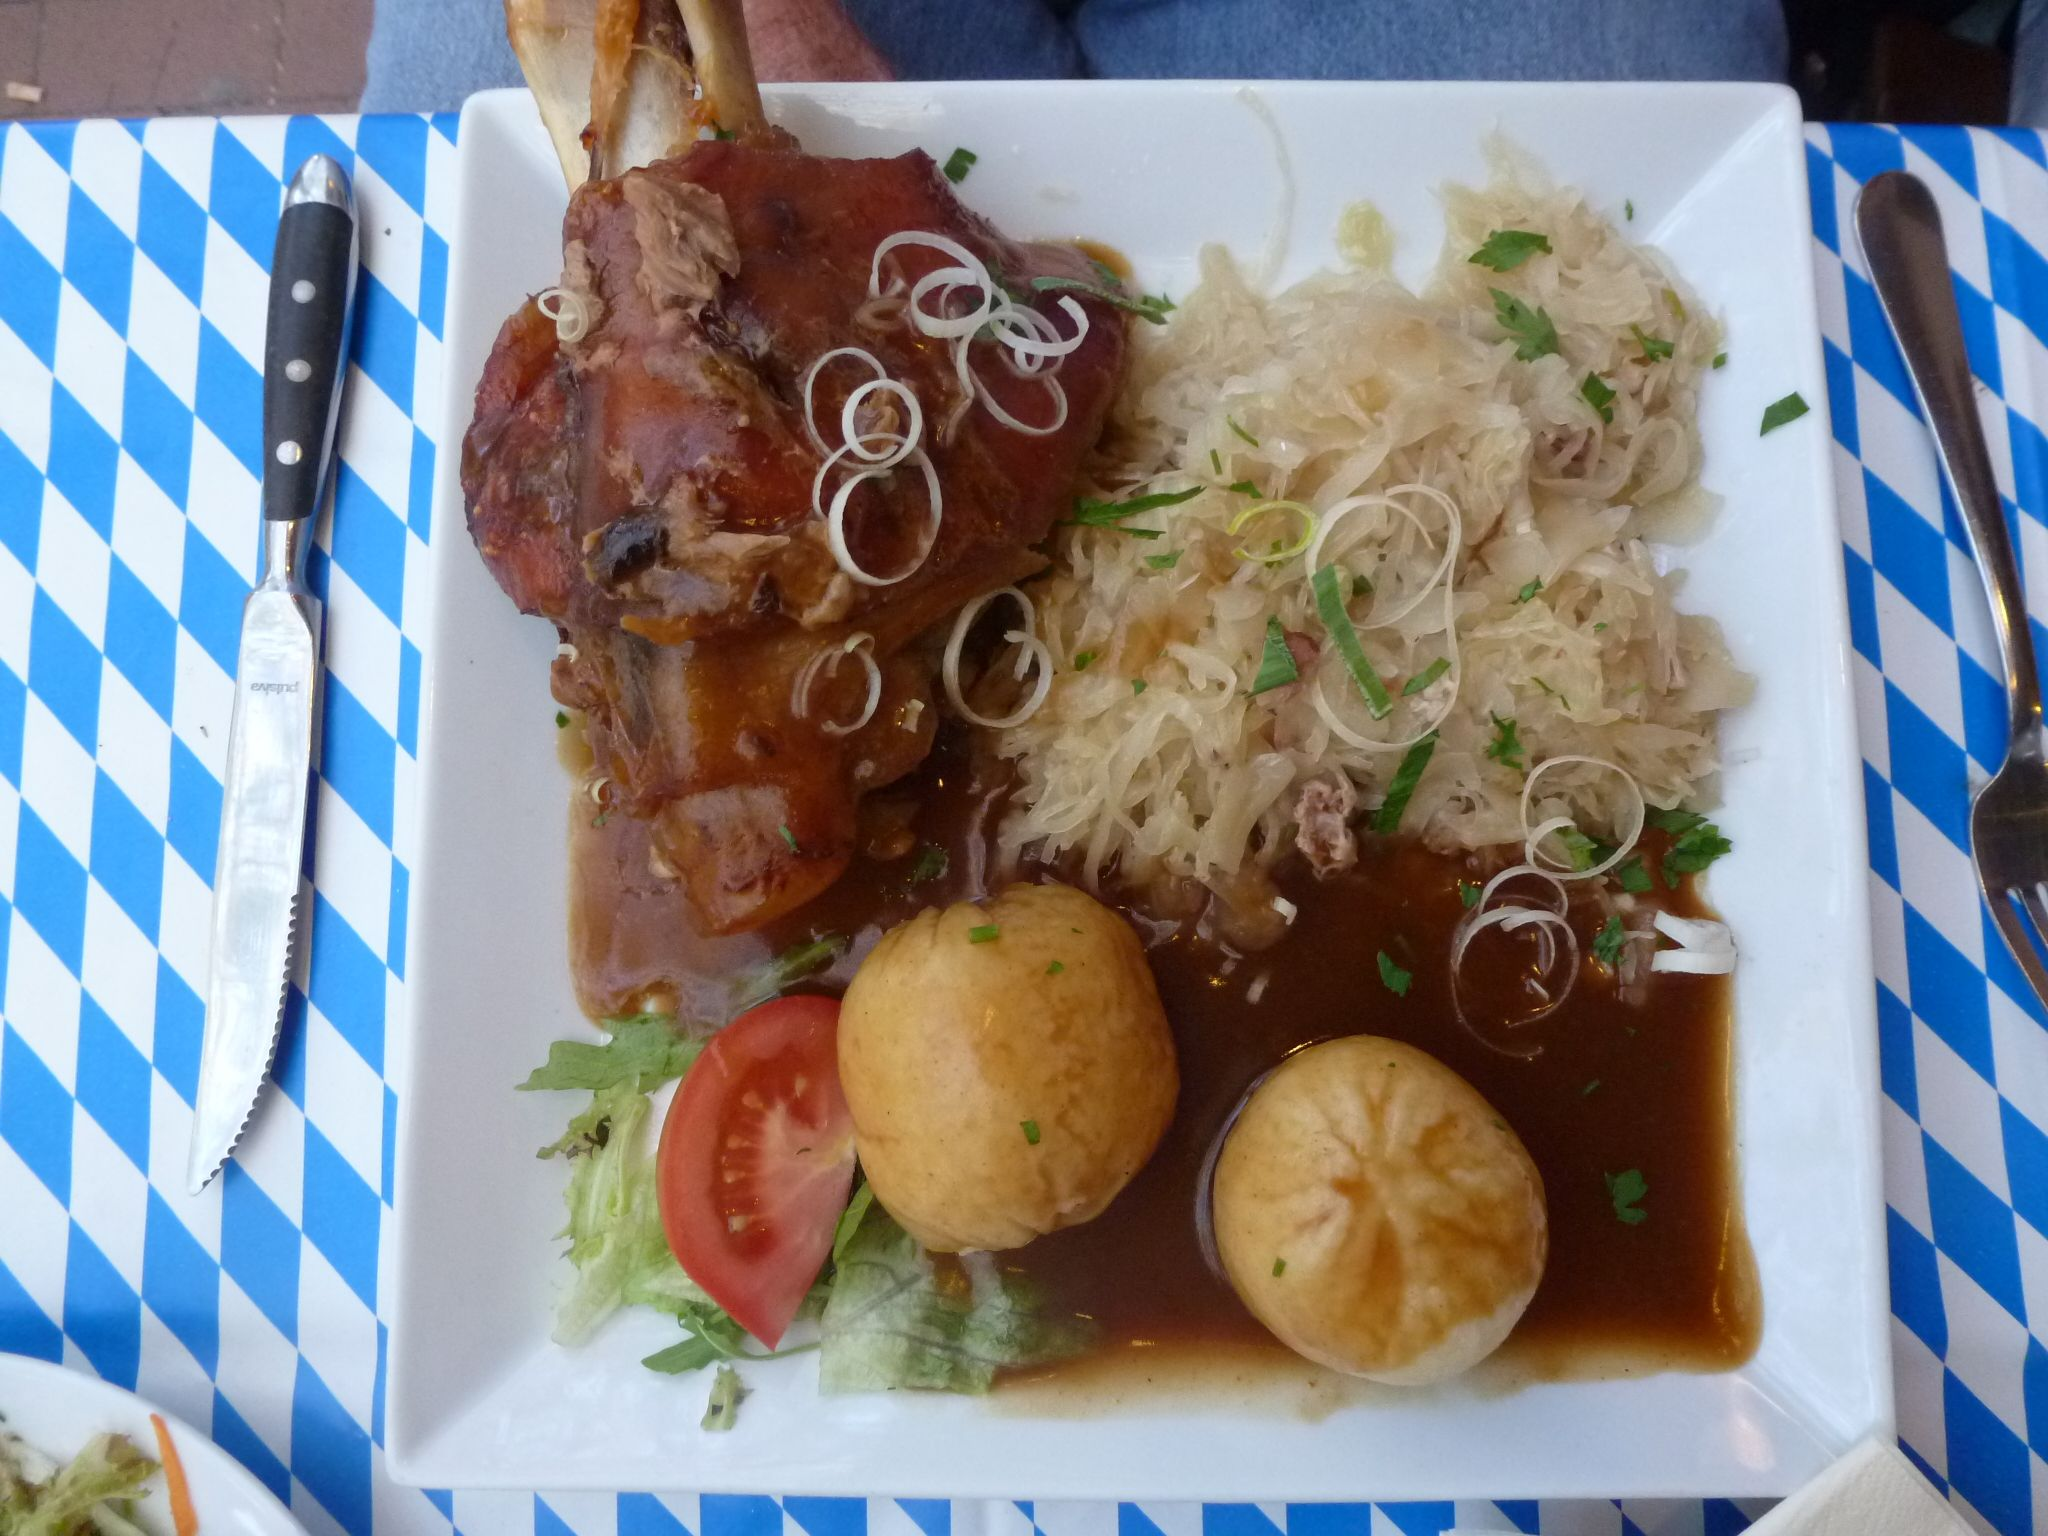 Typical german dinner in bonn germany foreign food pinterest typical german dinner in bonn germany sciox Images